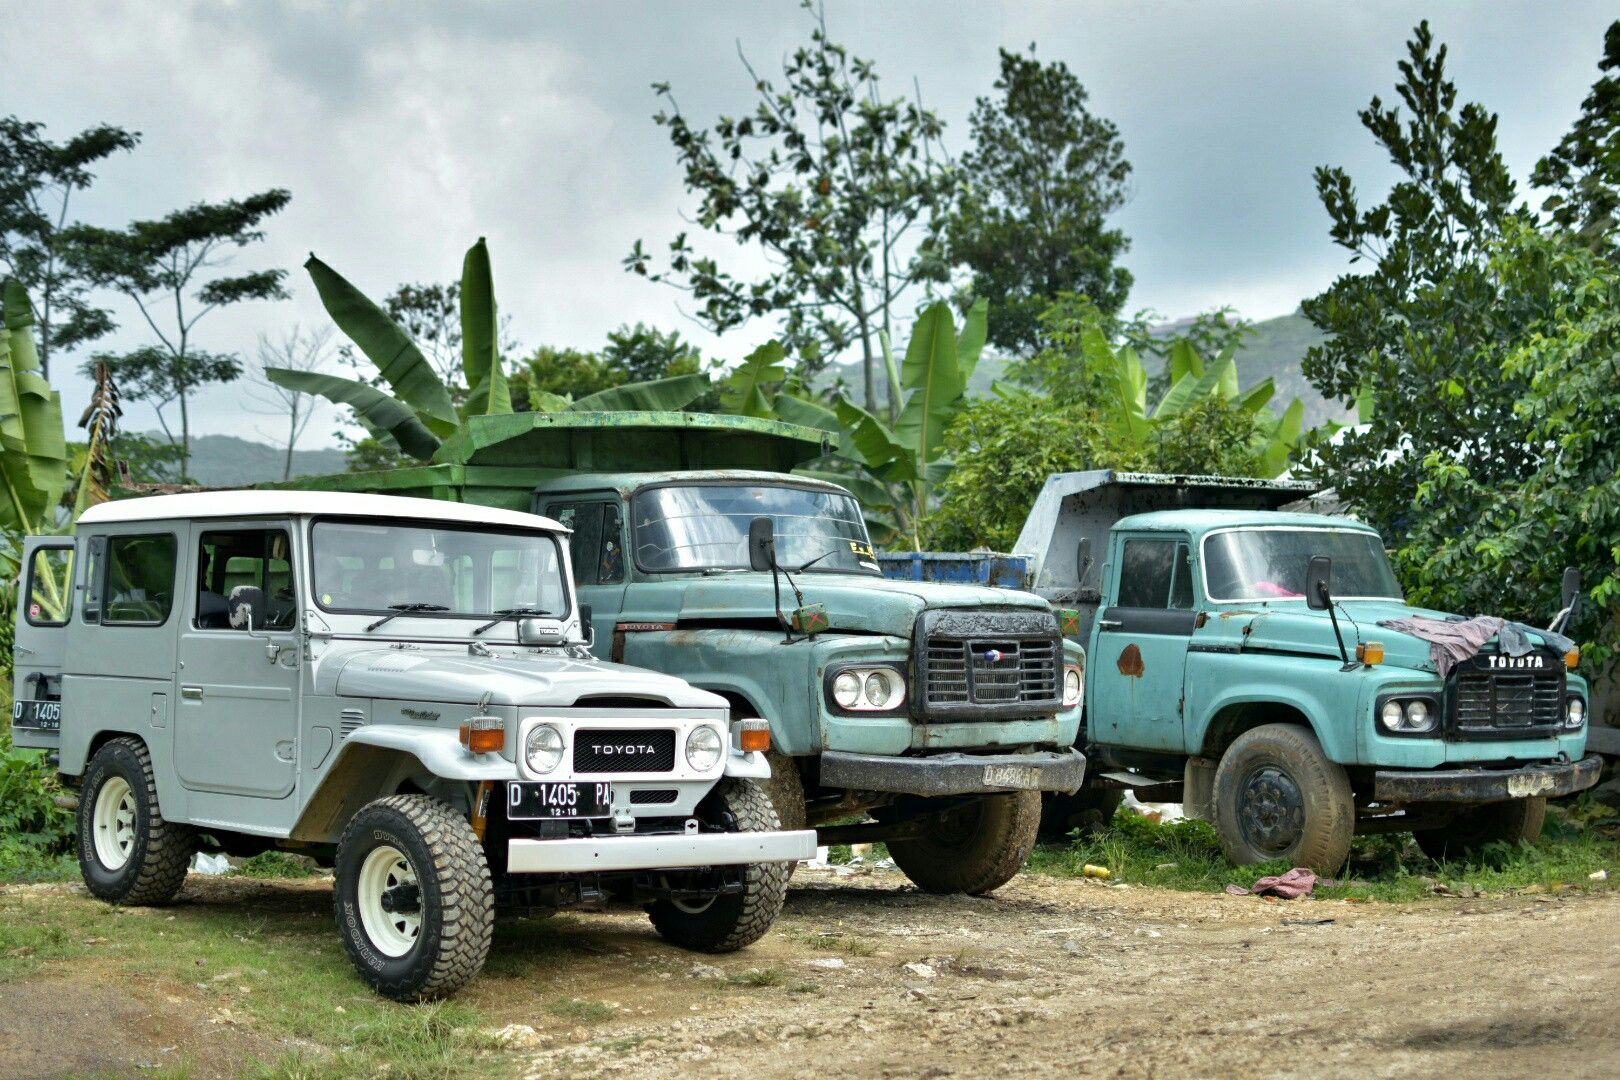 Toyota truck and suv